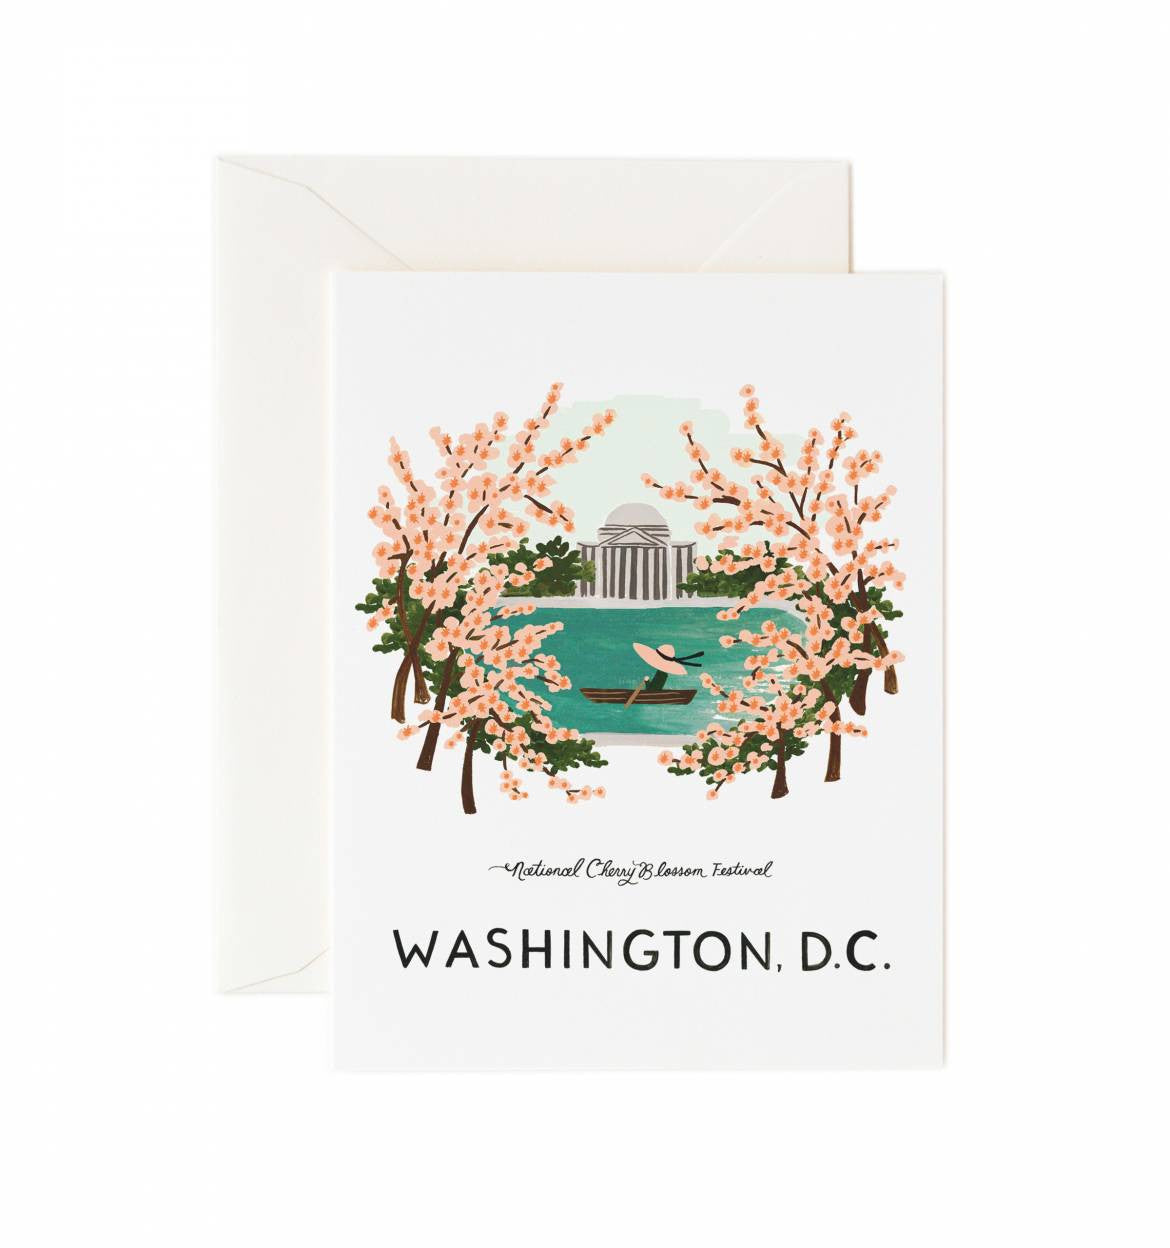 Washington D.C. Single Greeting Card